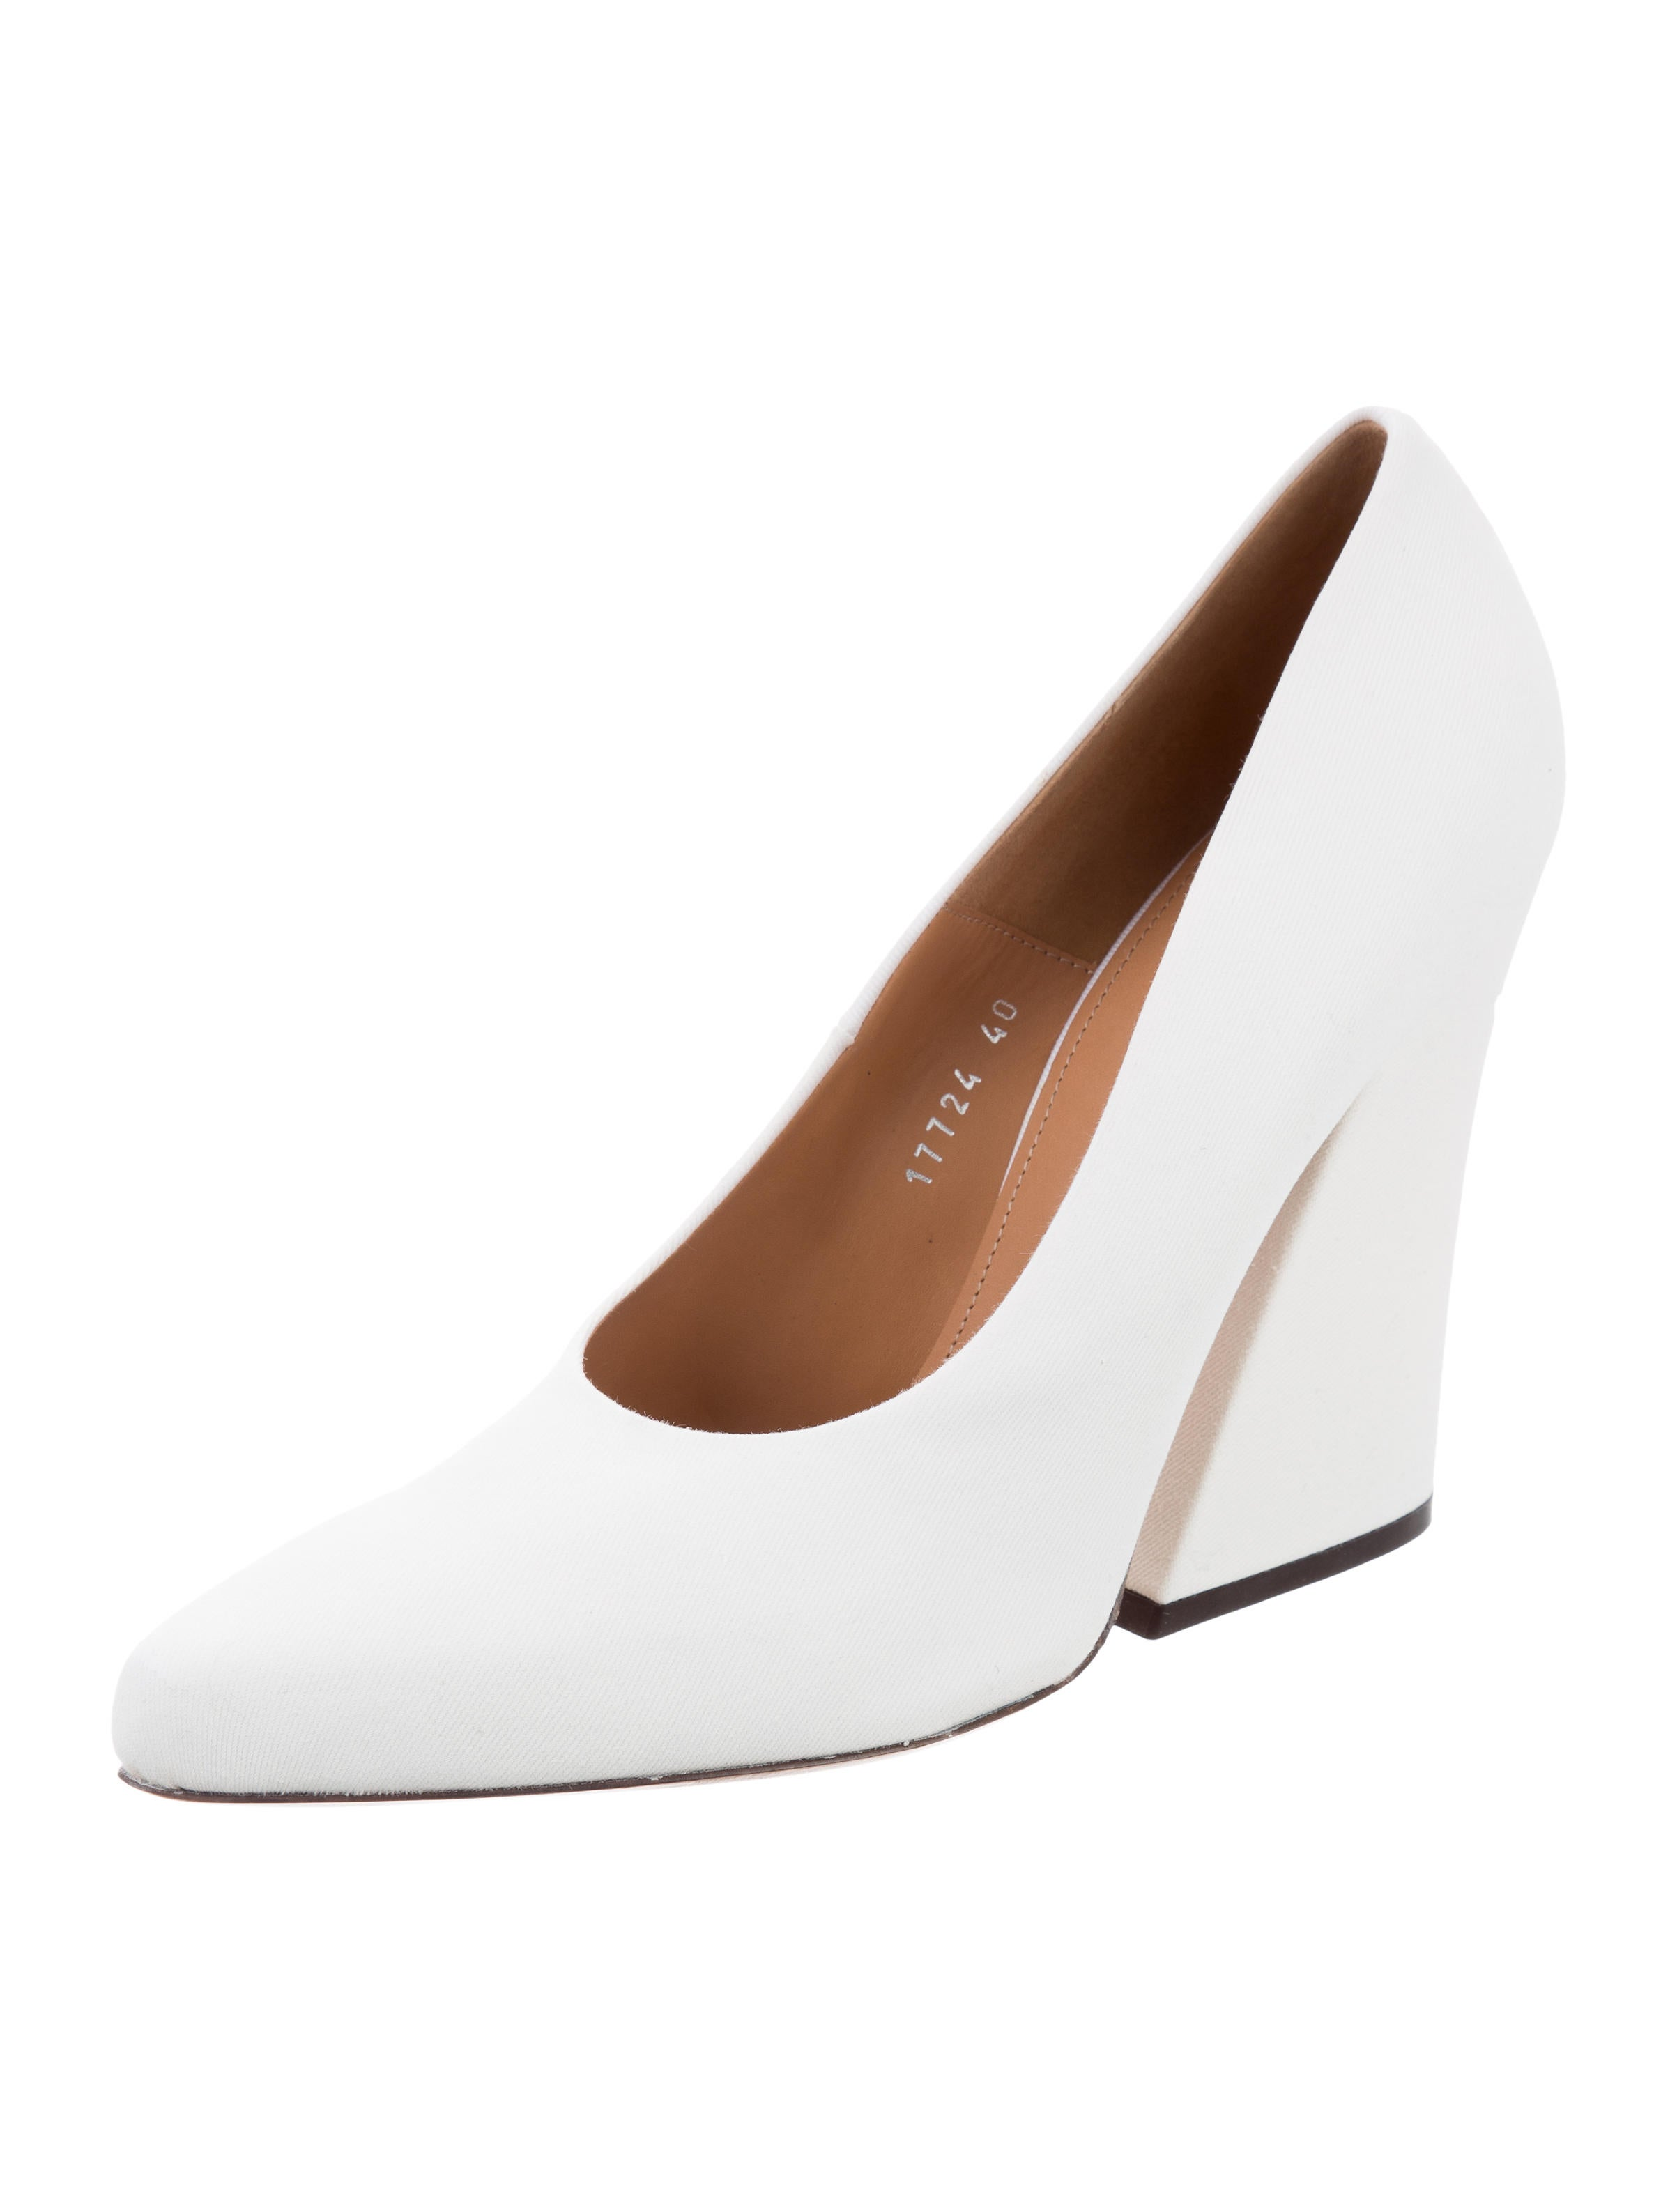 Dries Van Noten Canvas Pointed-Toe Pumps 100% original cheap online deals cheap price outlet online sale many kinds of ea38bGvjl